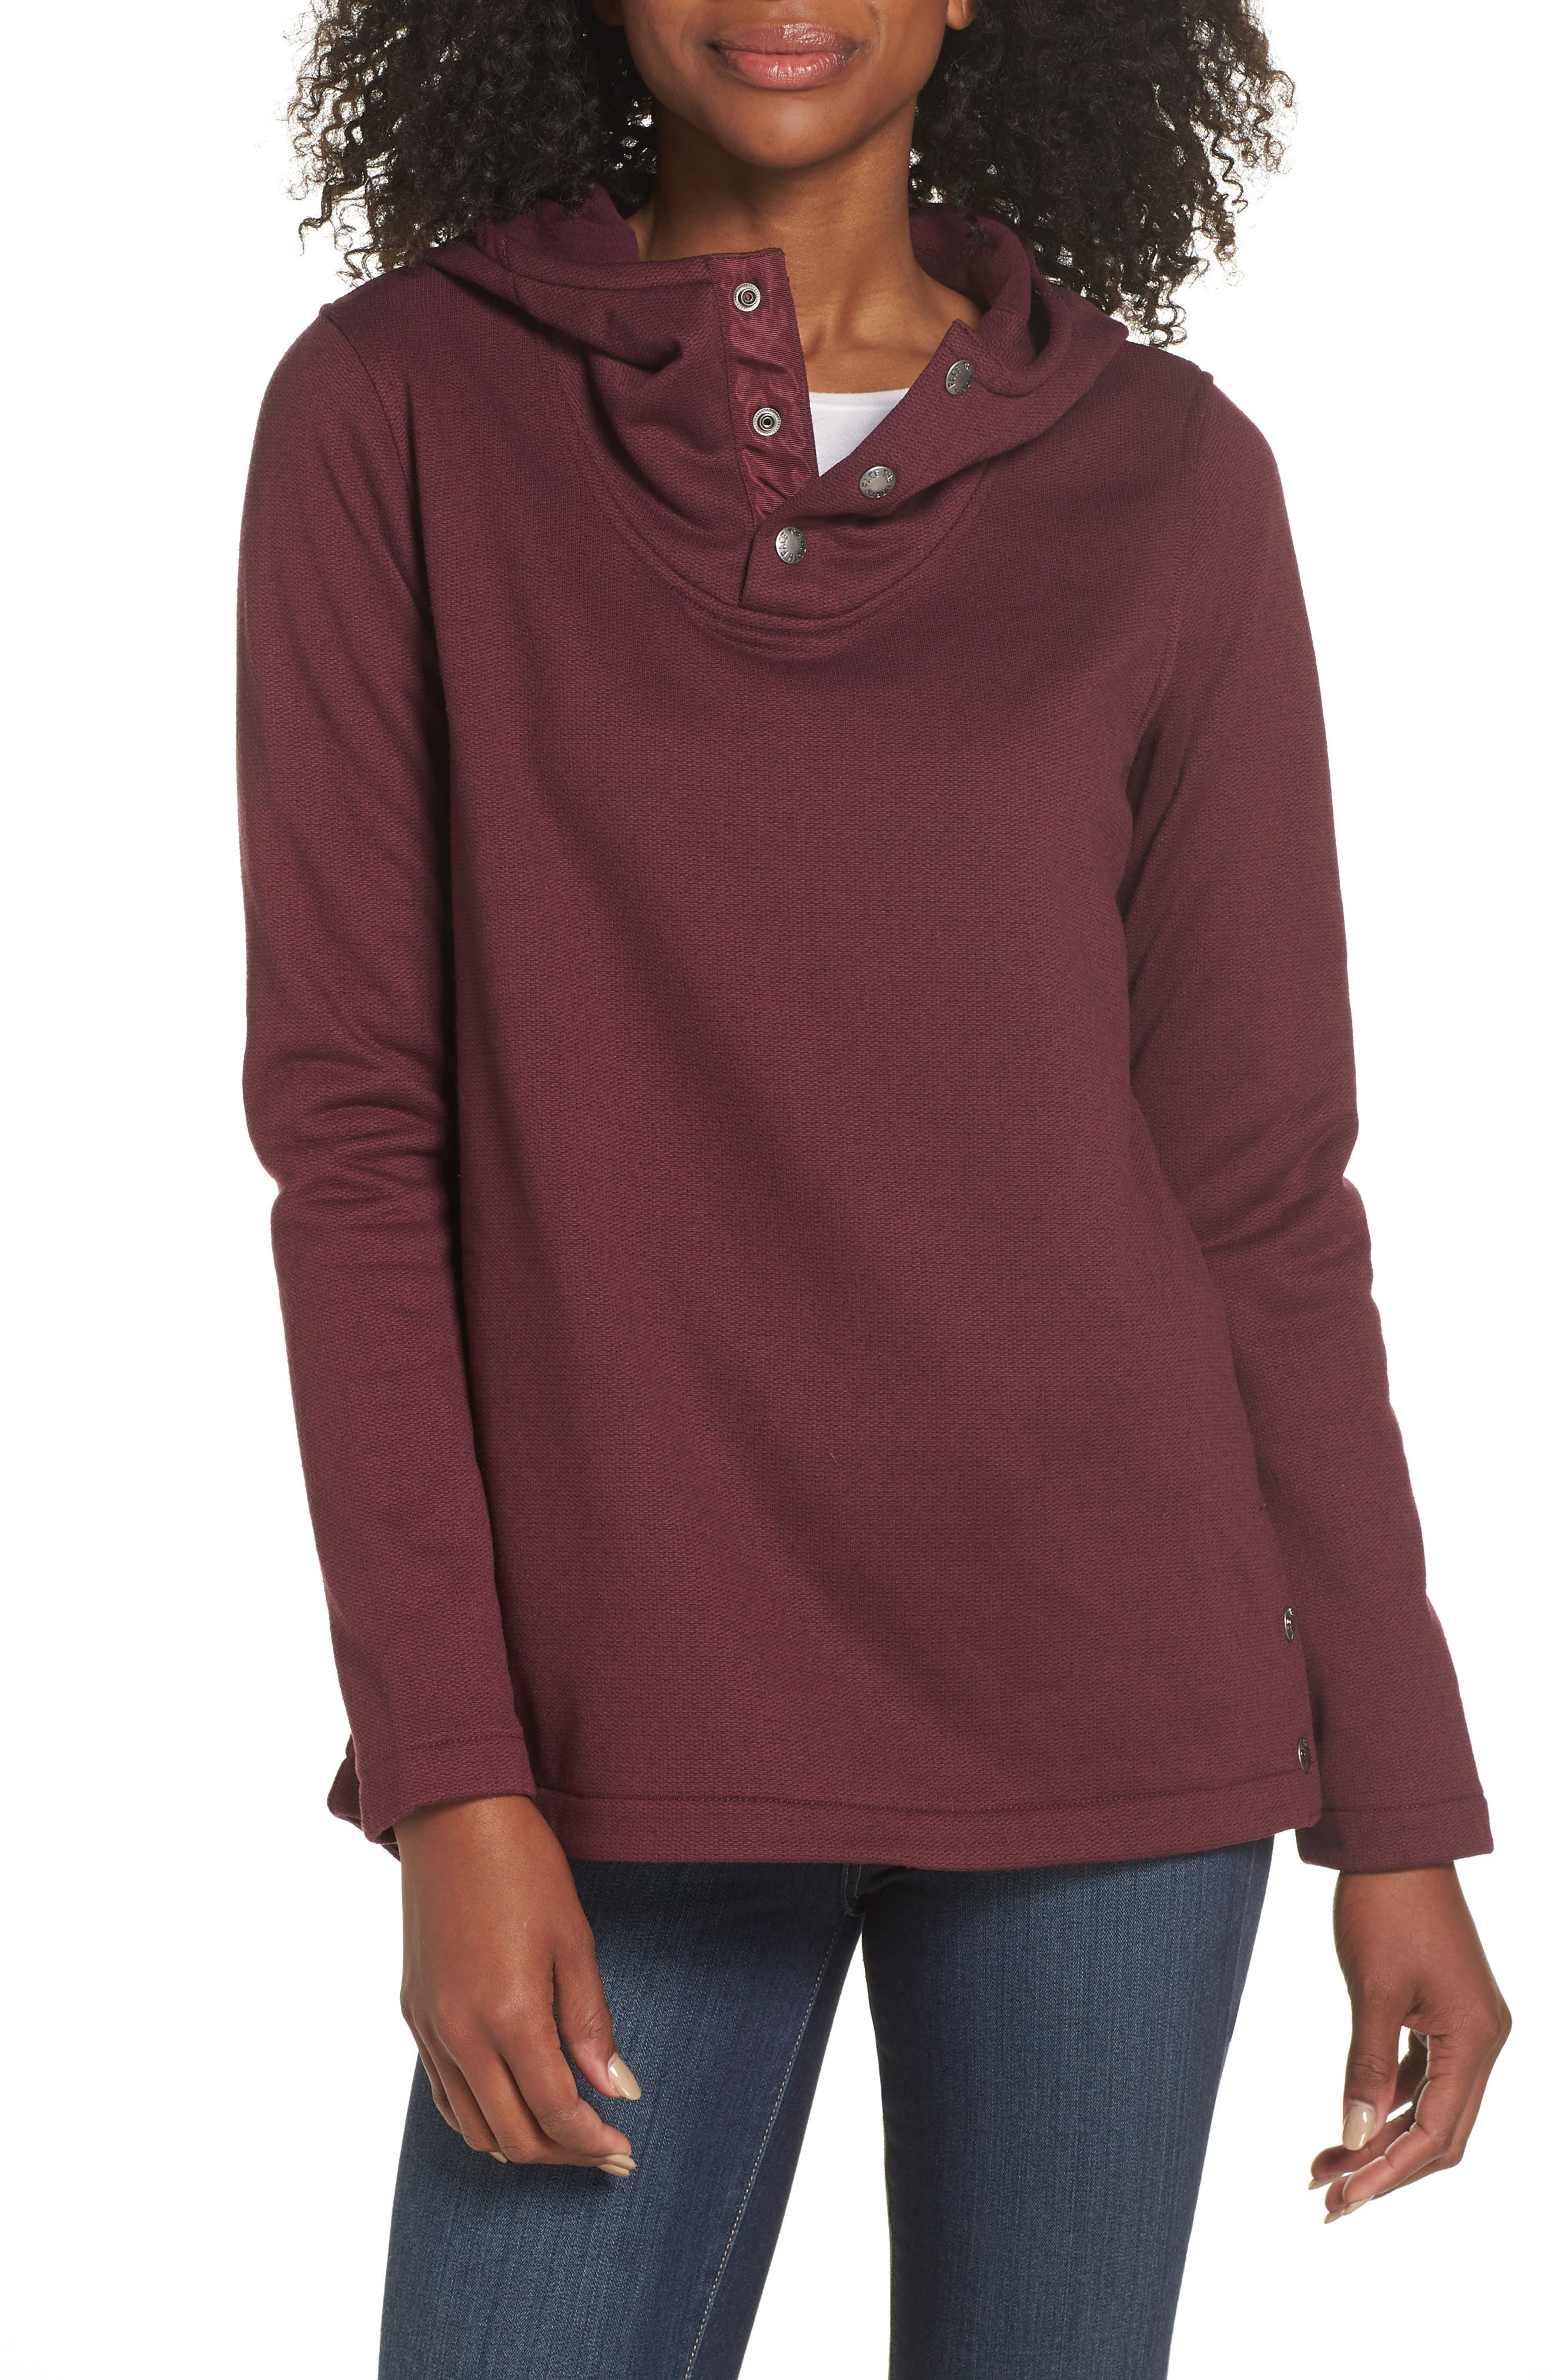 KNIT STITCH FLEECE HOODIE from Nordstrom